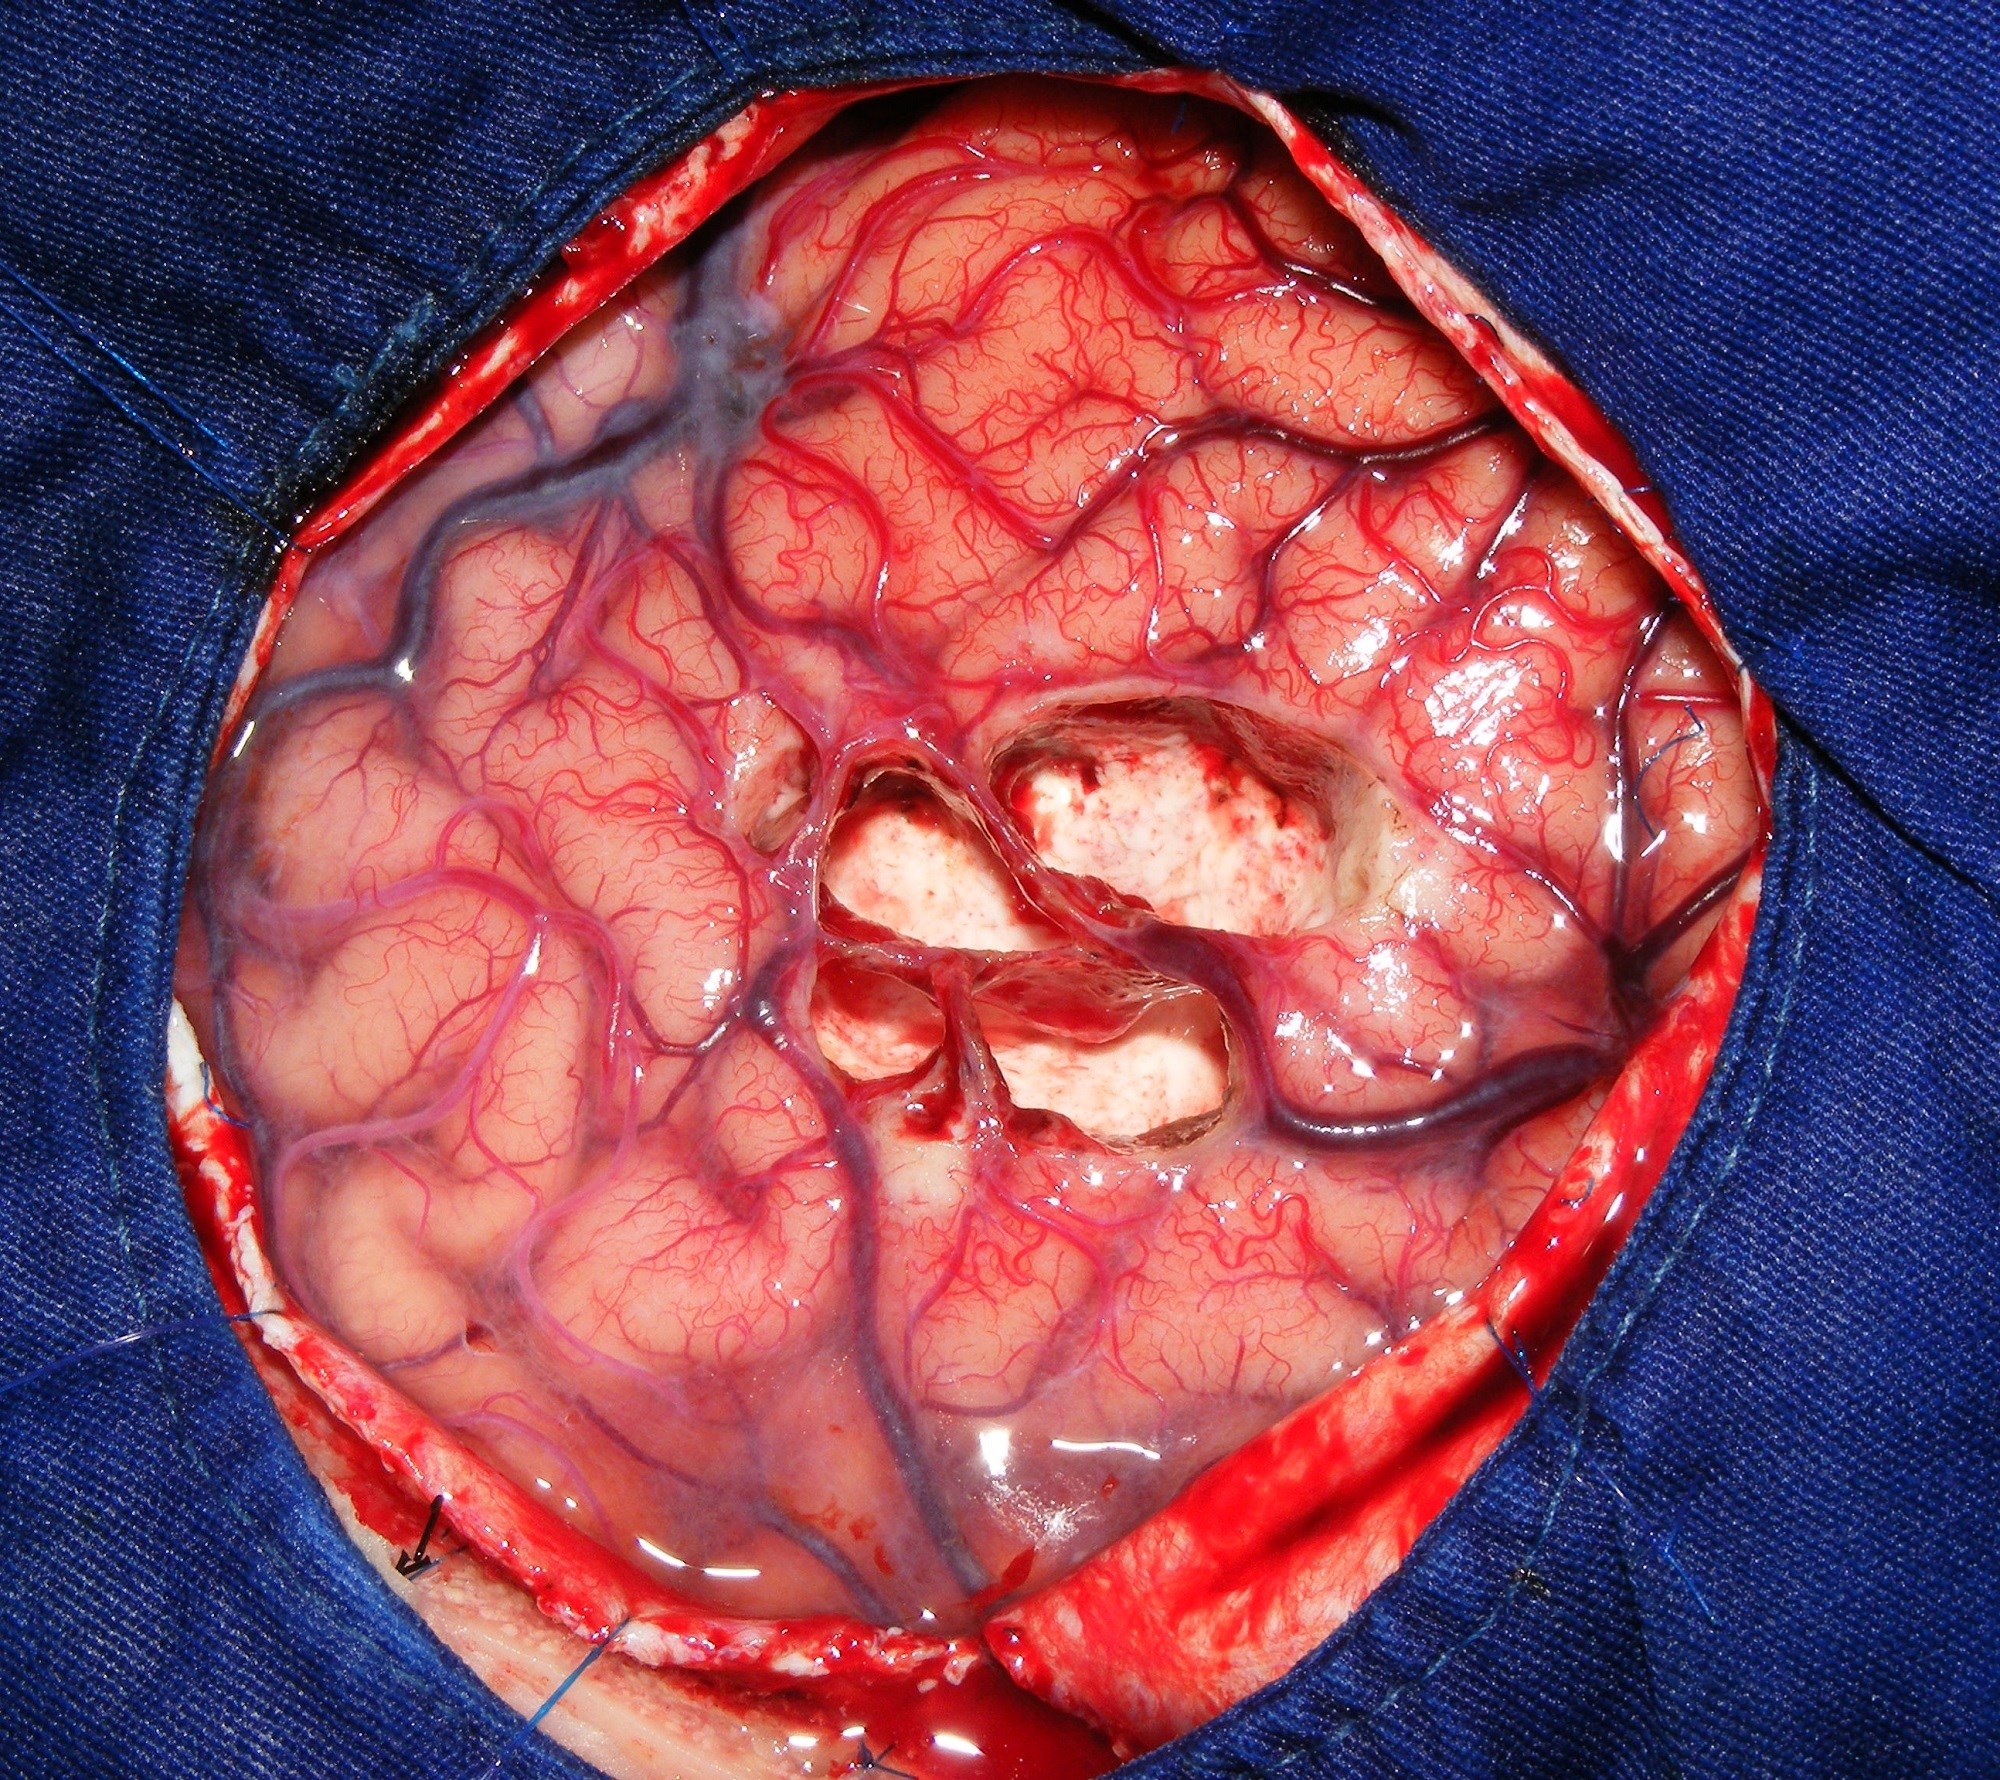 Postresection Monitoring May Provide Further Insights on Epileptogenic Zone Following Multistage Epilepsy Surgery